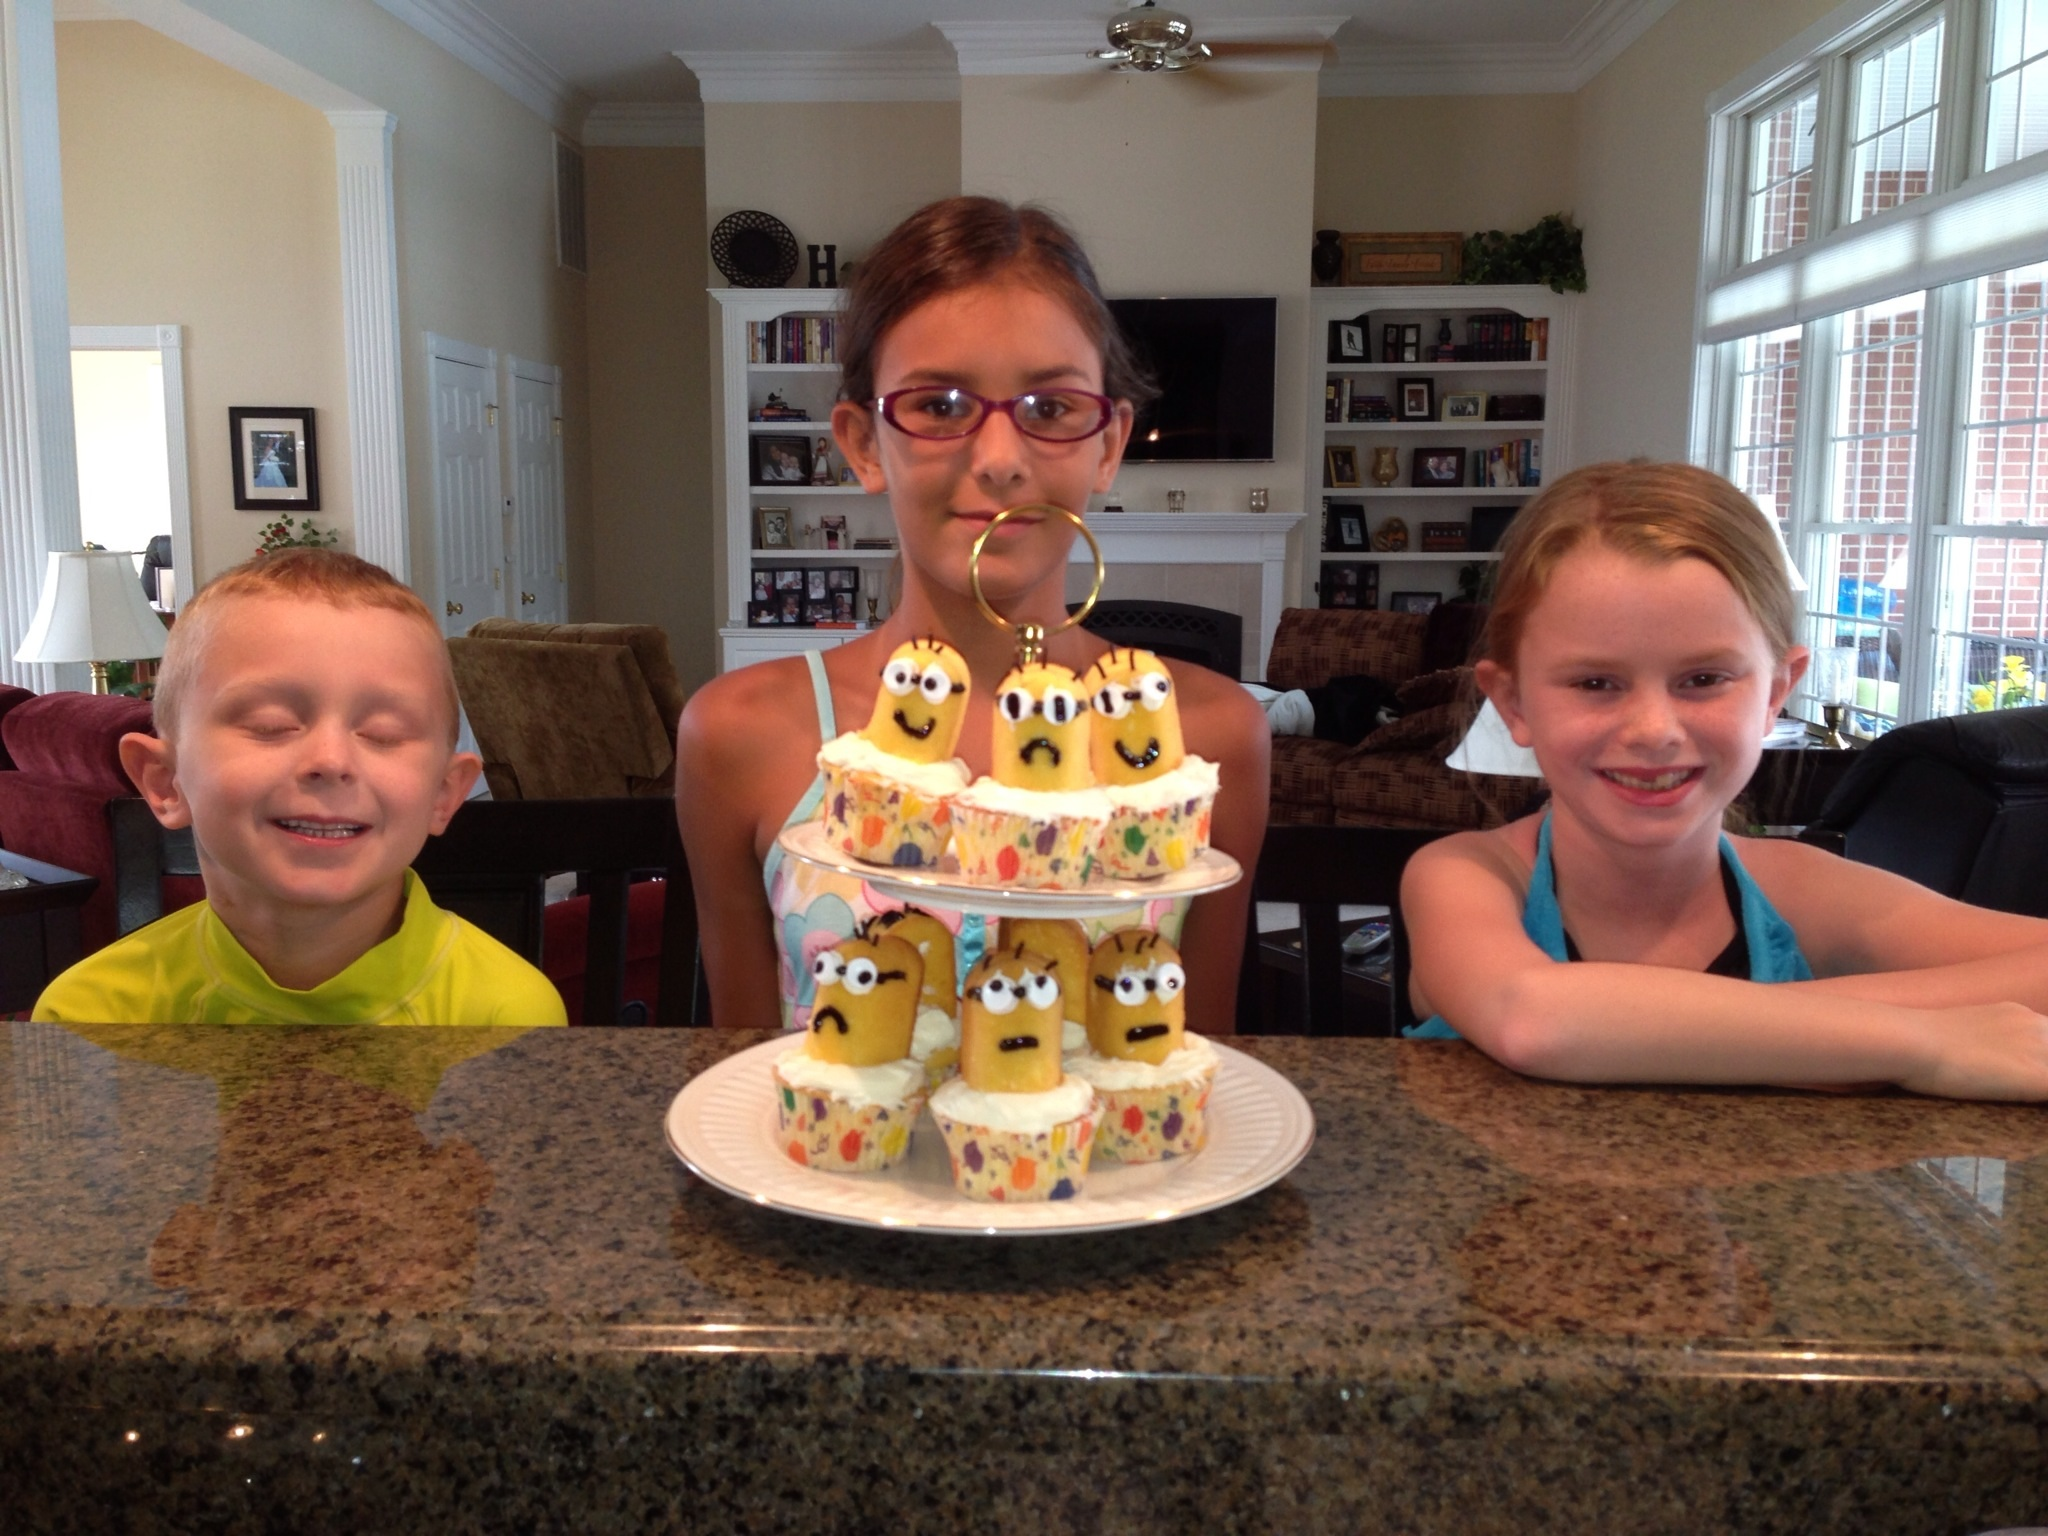 Their Minion cupcakes turned out pretty cute.